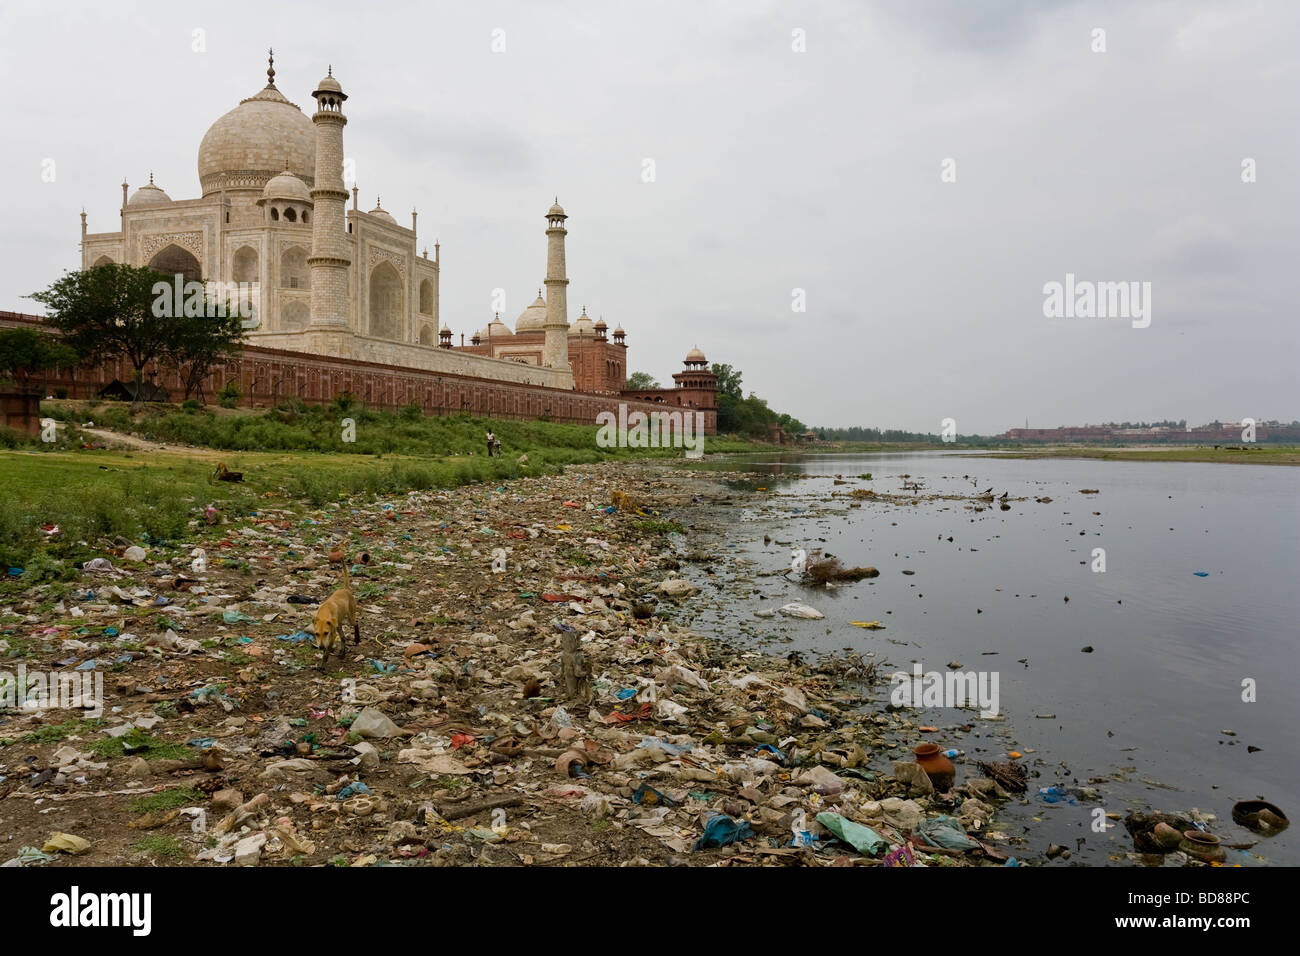 Pollution and waste line the river bank behind the Taj Mahal - Stock Image